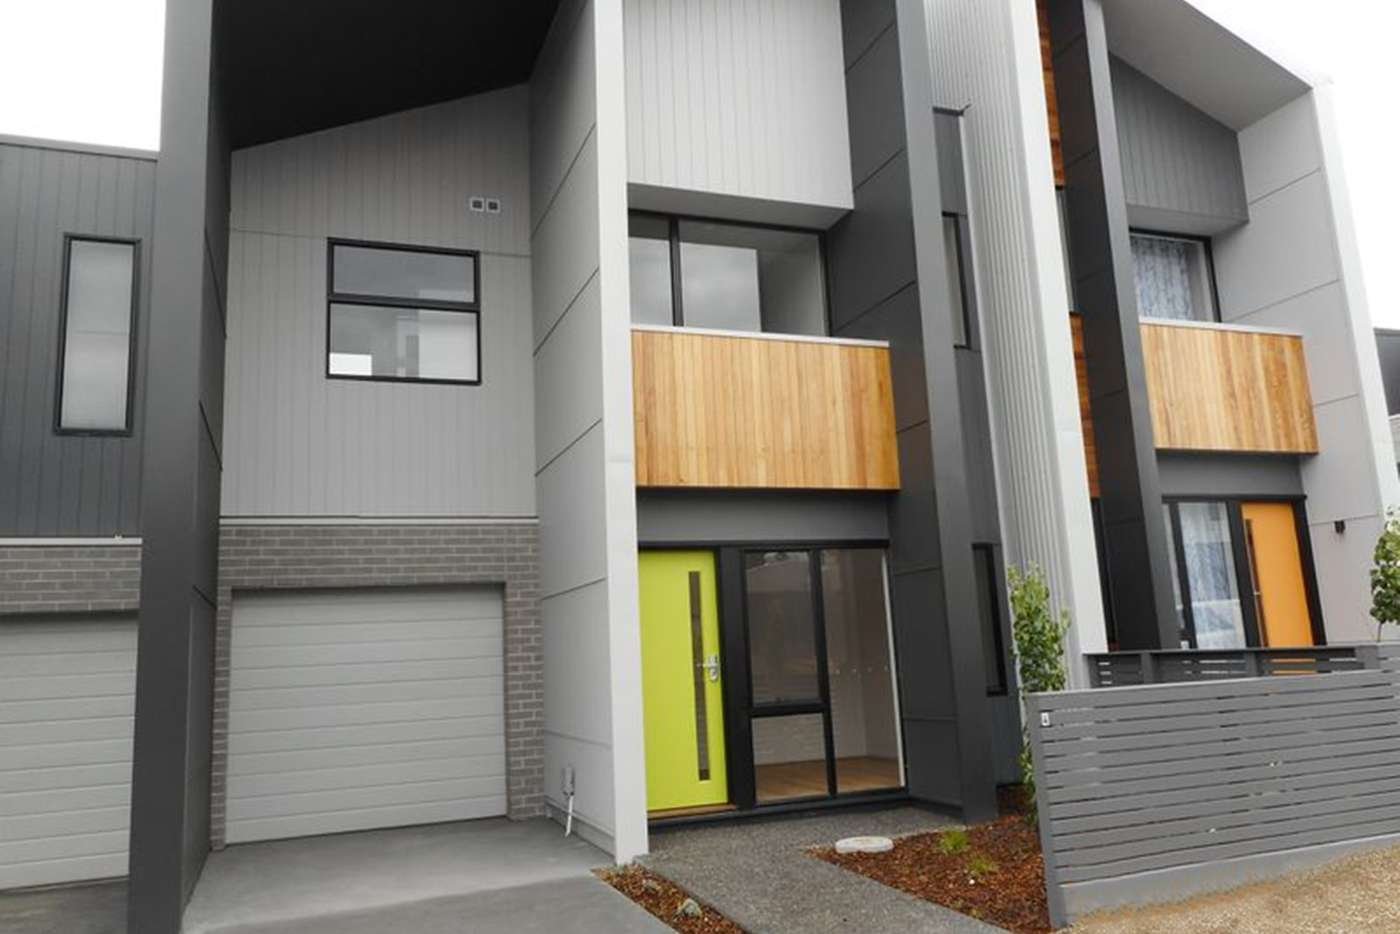 Main view of Homely townhouse listing, 4 Jacks Place, Dandenong VIC 3175